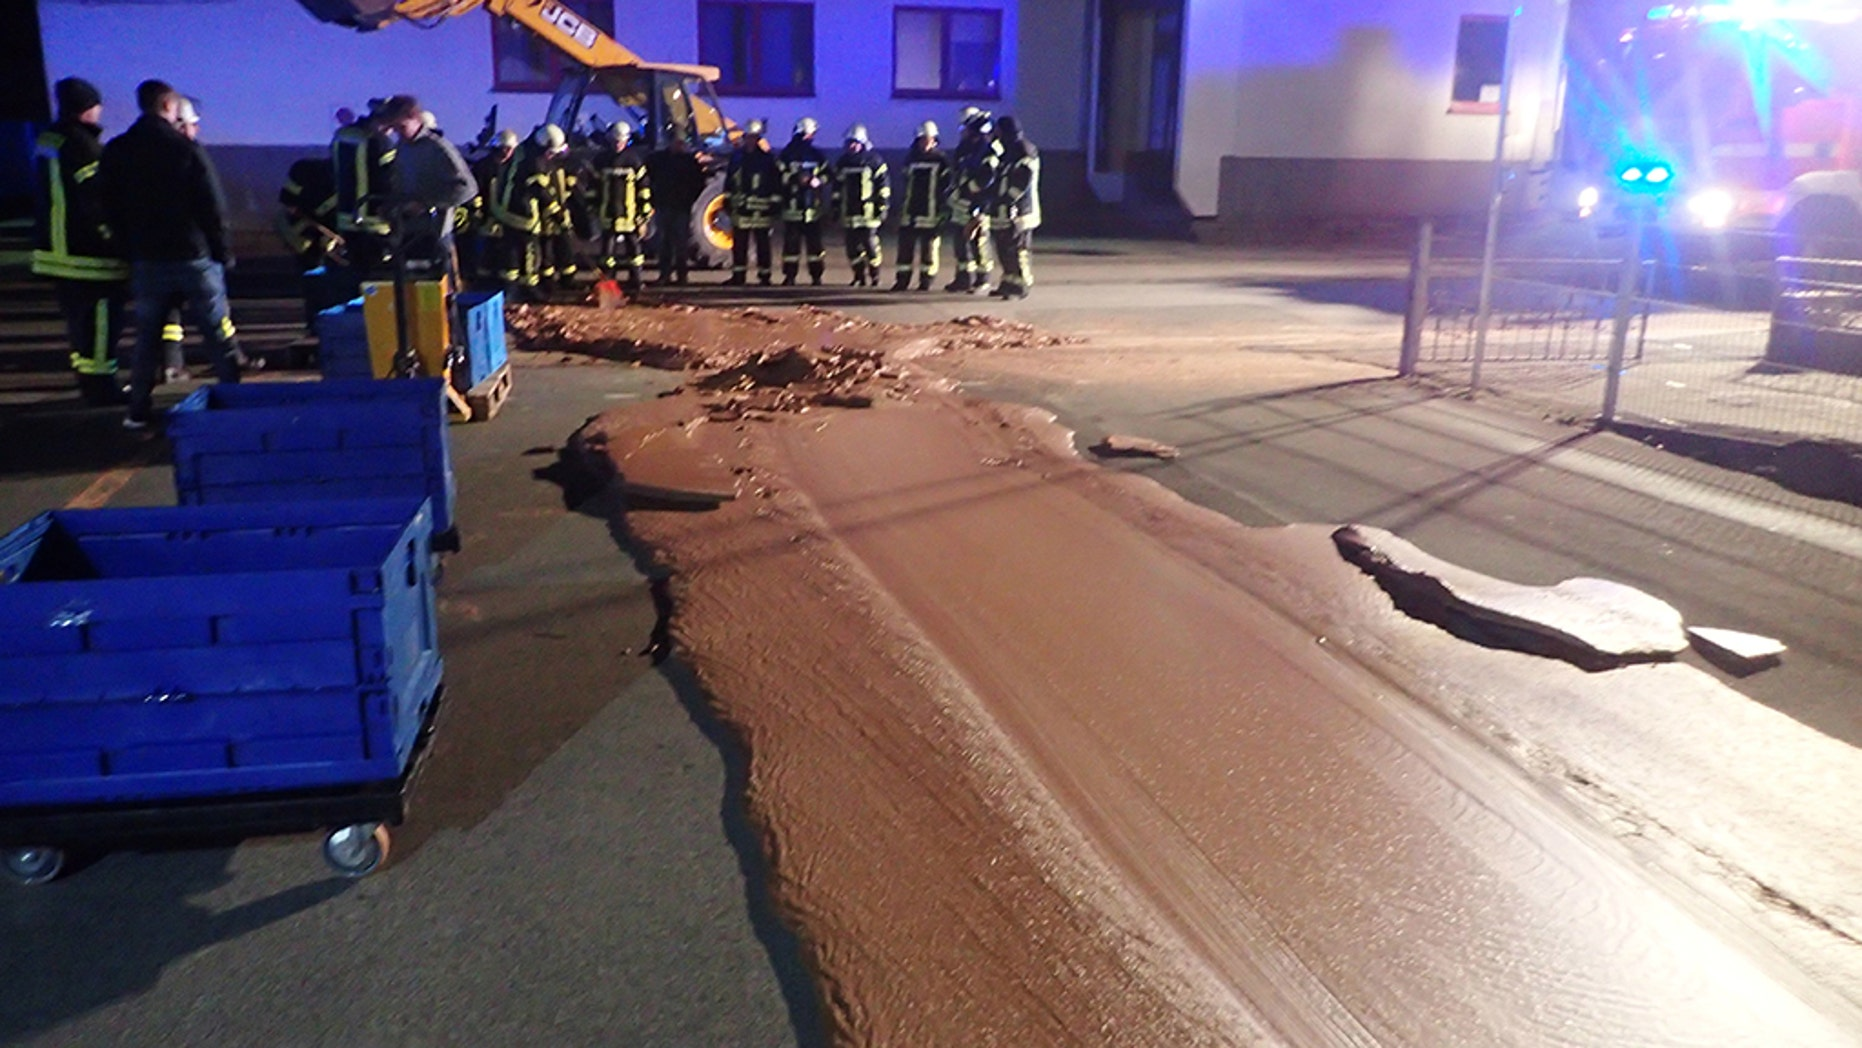 Spilt chocolate is seen on a road in Werl, Germany December 10, 2018 in this picture obtained from social media.